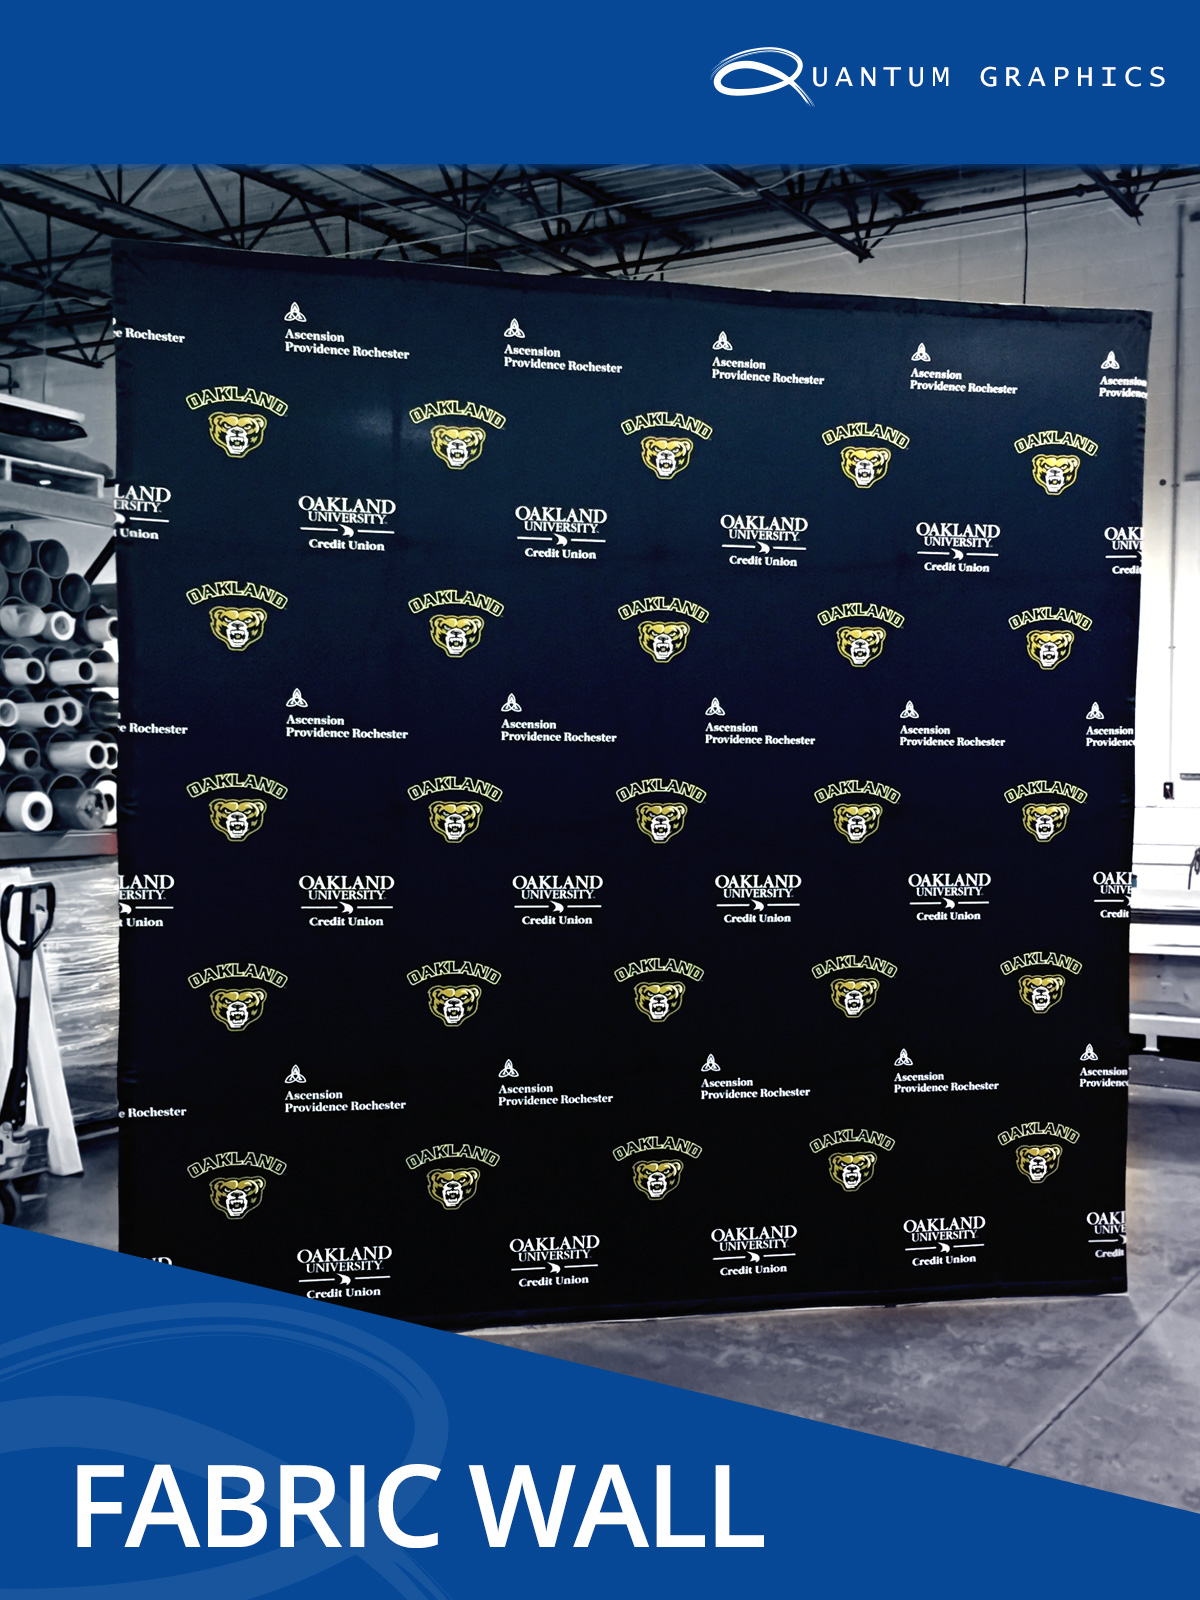 fabric wall showing the height and width for oakland university